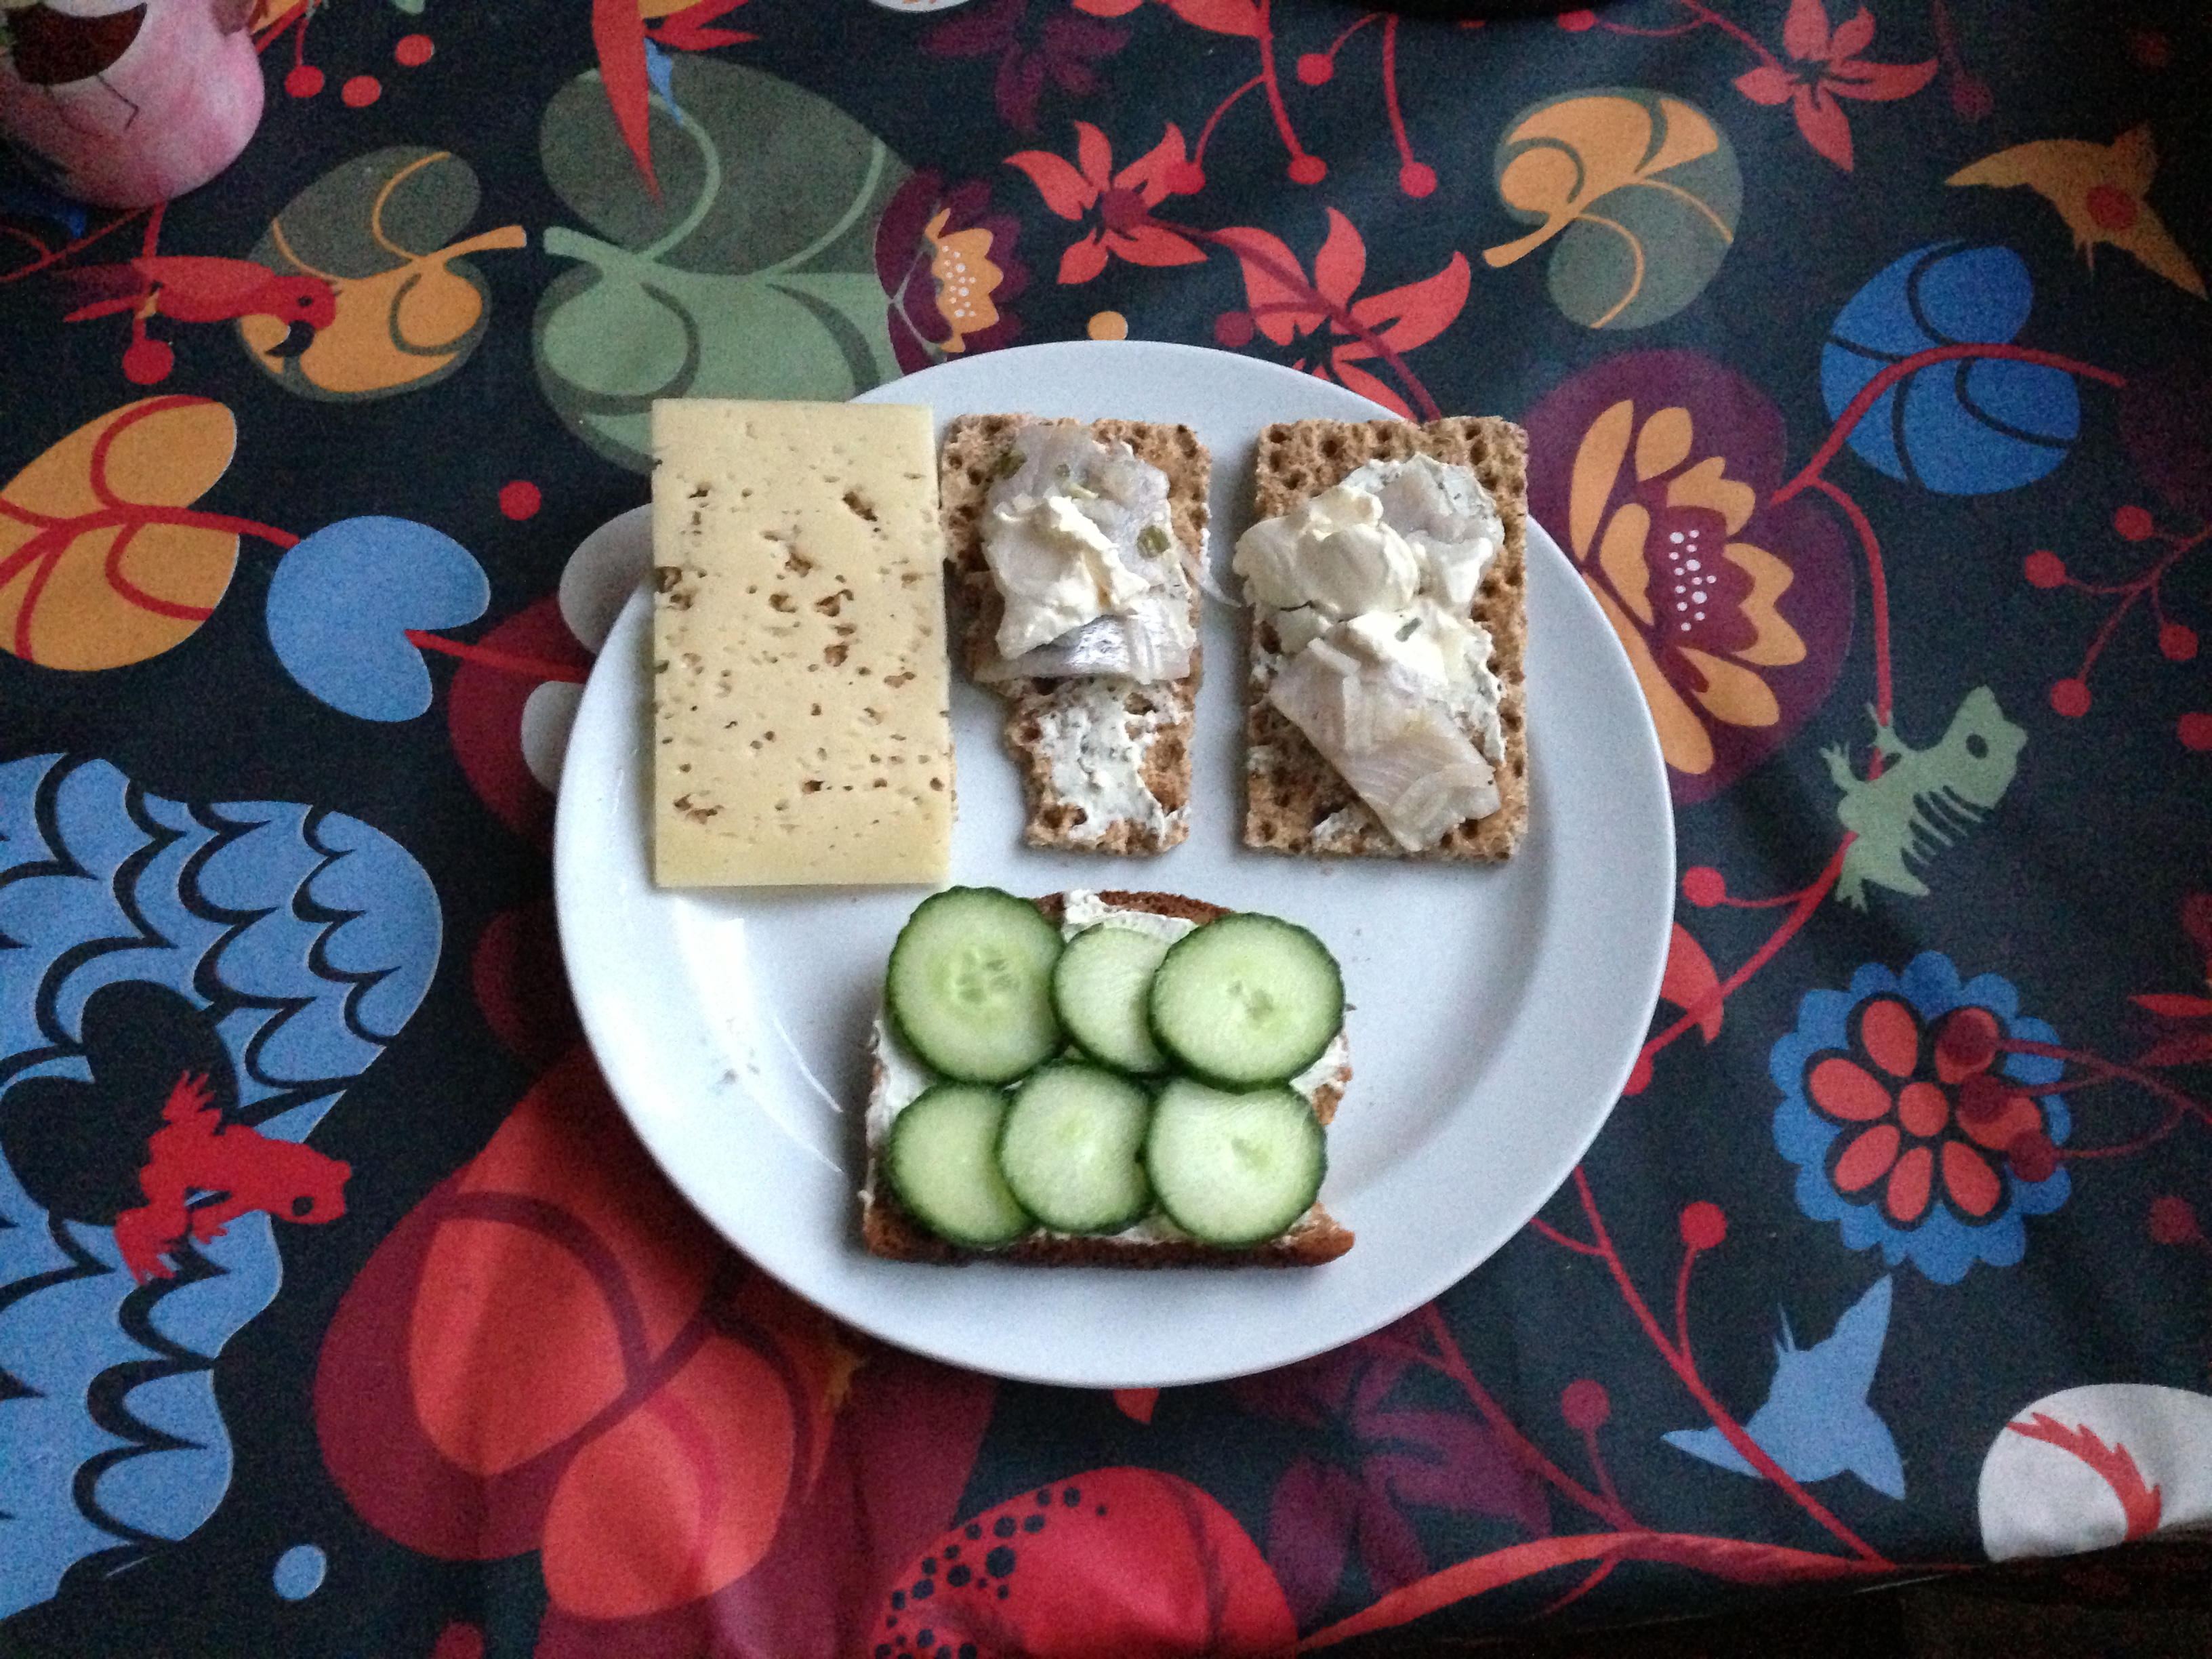 """Pickled herring, or """"sill"""", is a traditional midsummer's food and not for the faint of heart. Very fishy, very pickley, and very delicious."""